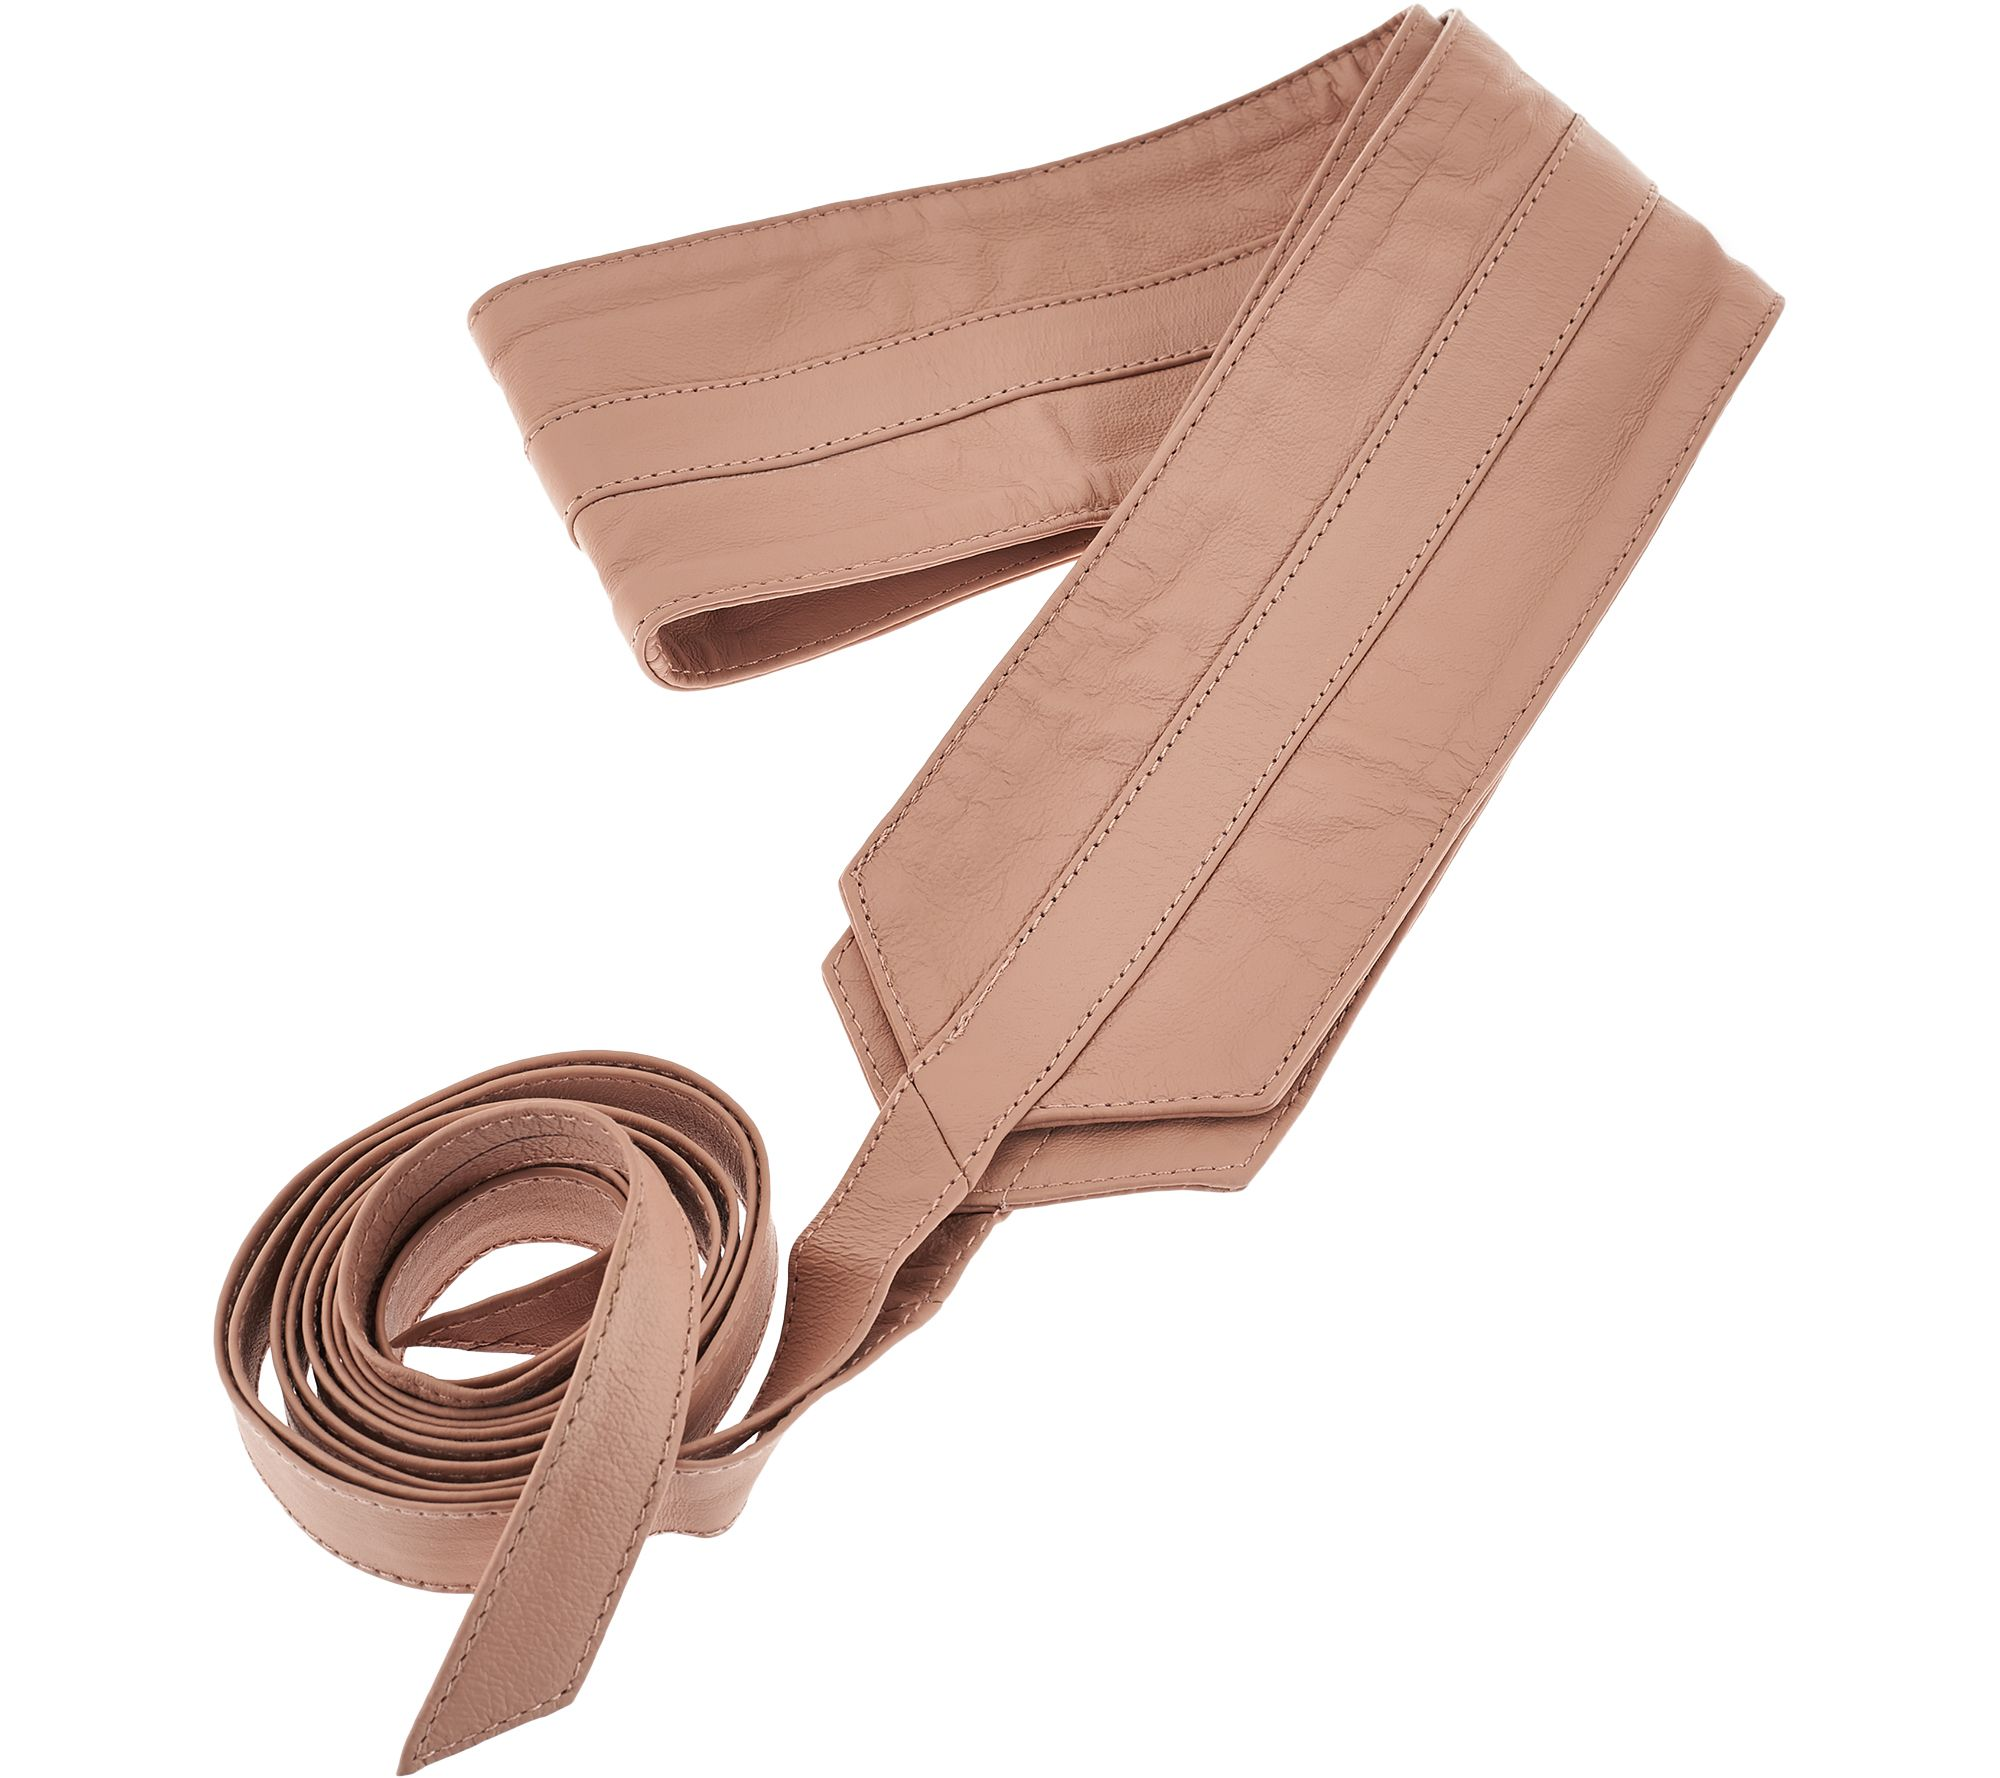 b942085a77 G.I.L.I. Leather Obi Wrap Belt - Page 1 — QVC.com